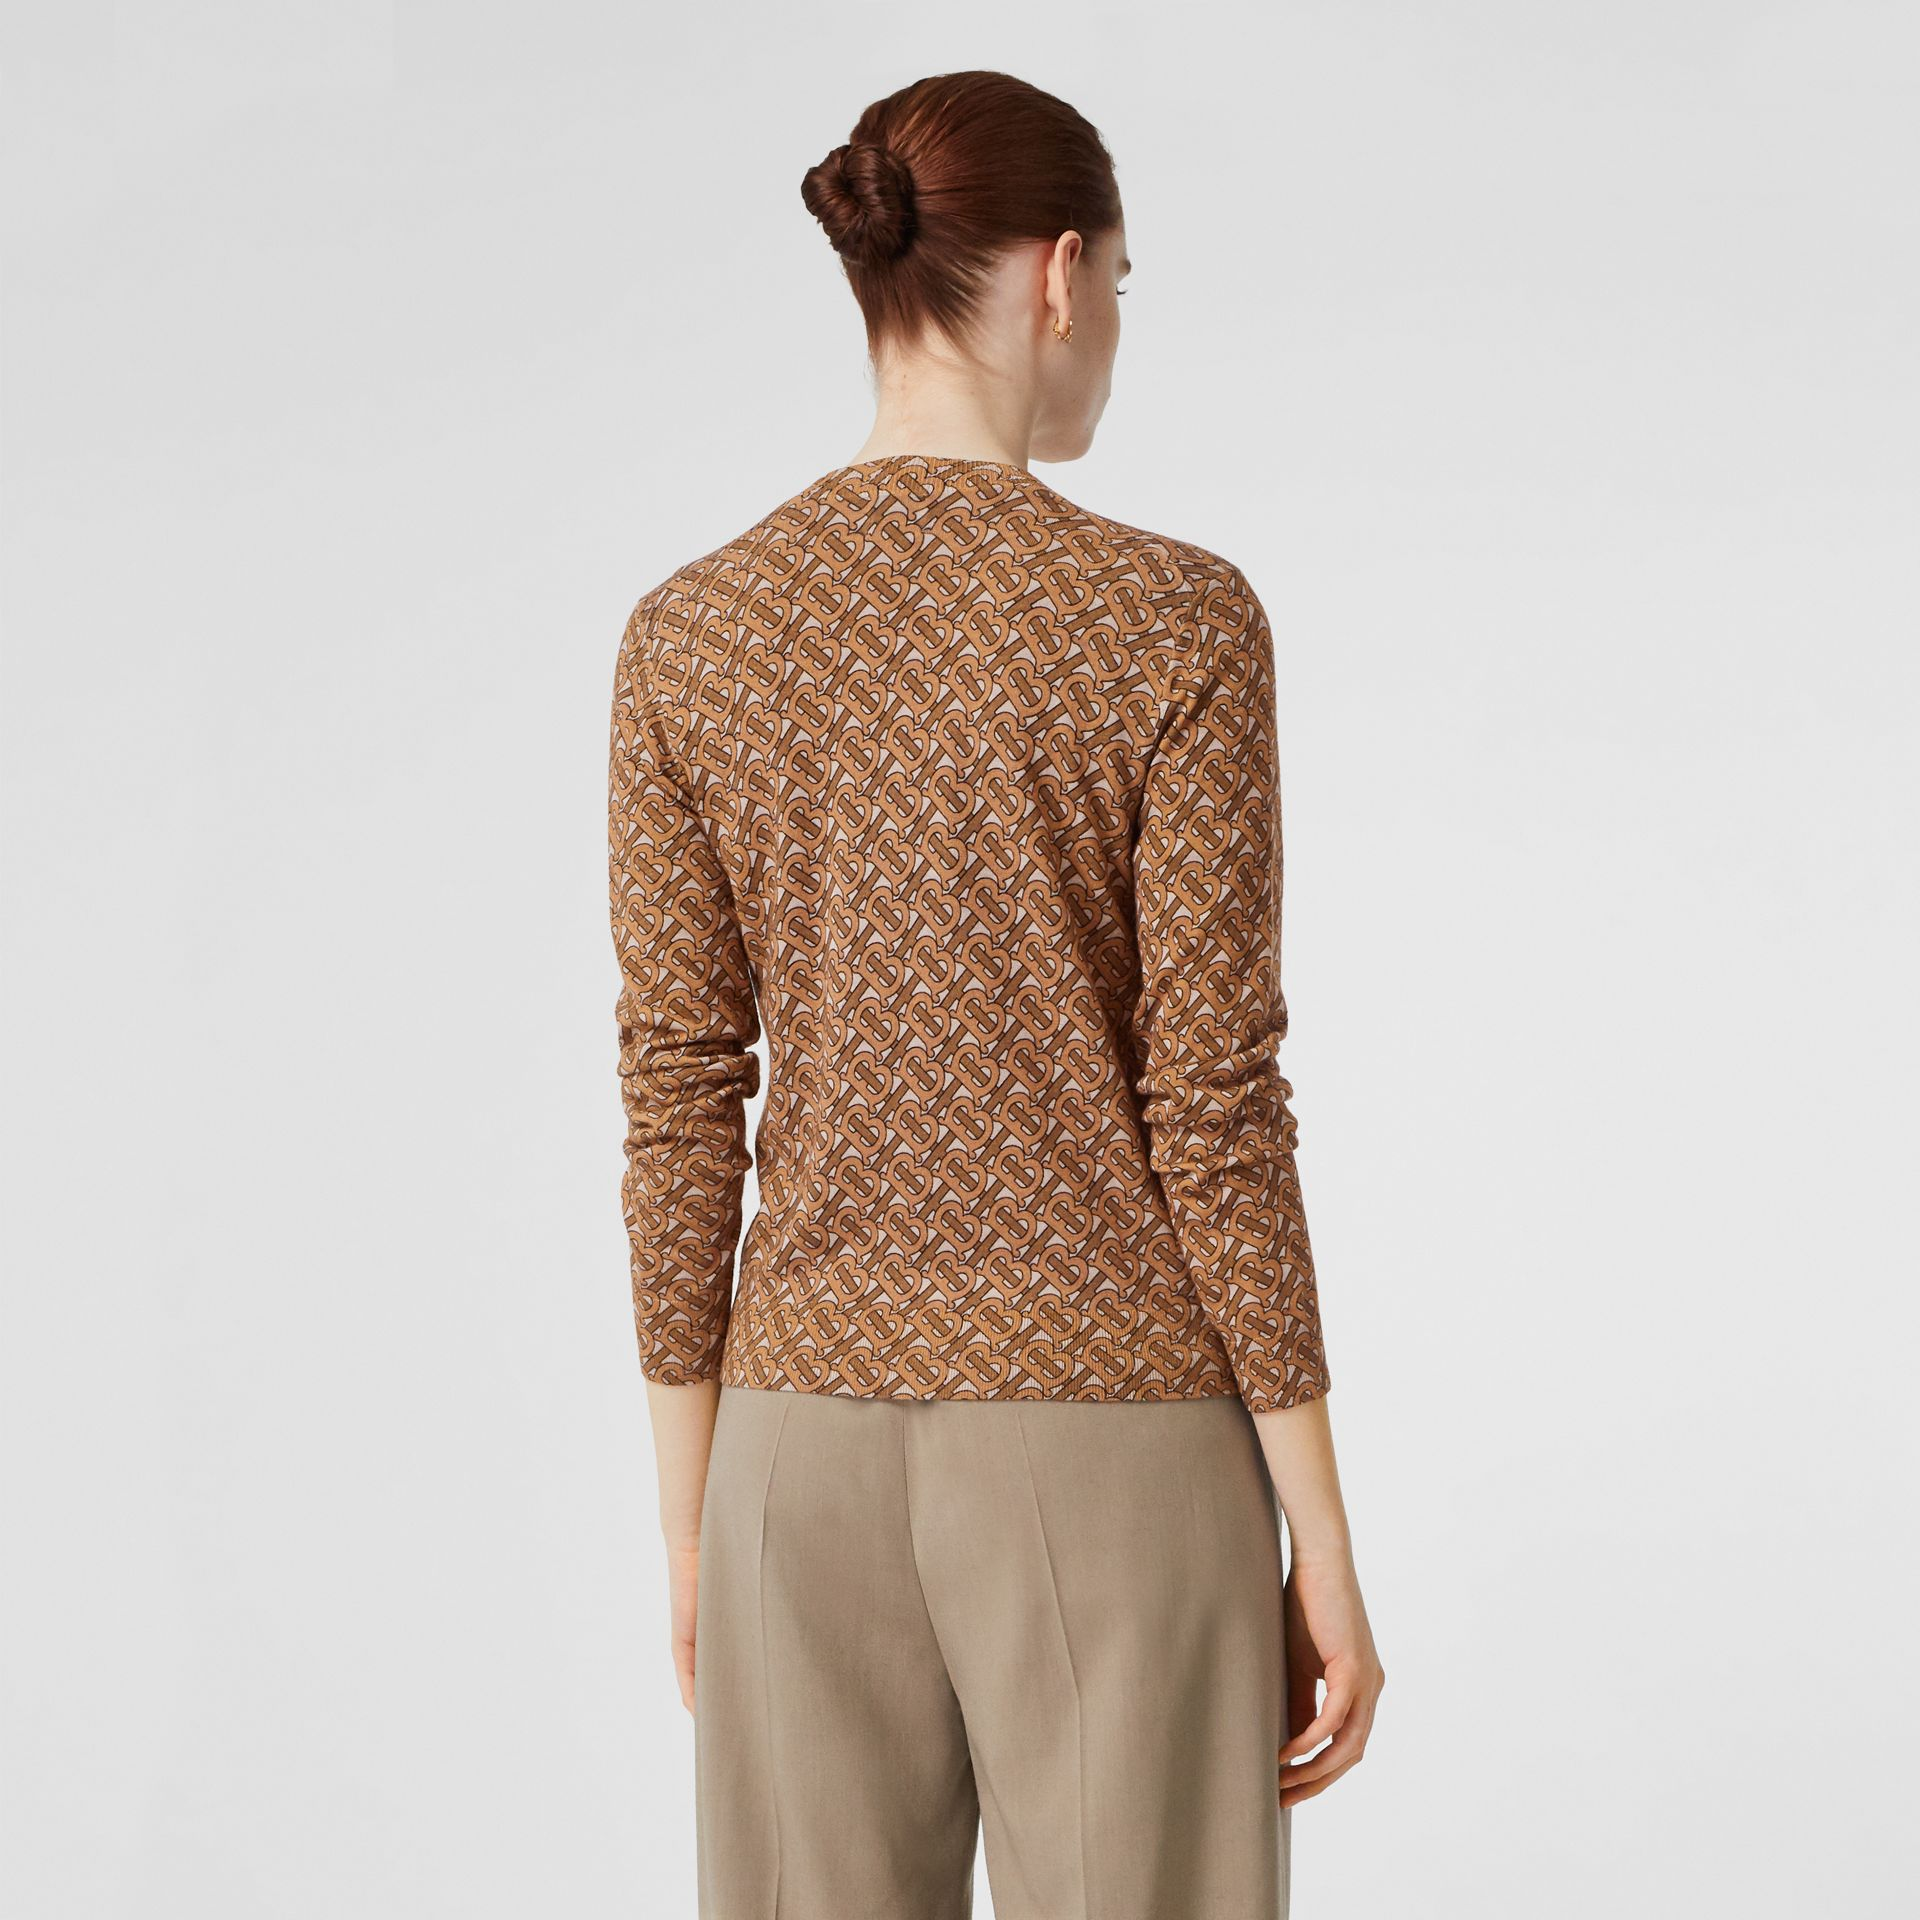 Monogram Print Merino Wool Cardigan in Beige - Women | Burberry Singapore - gallery image 2